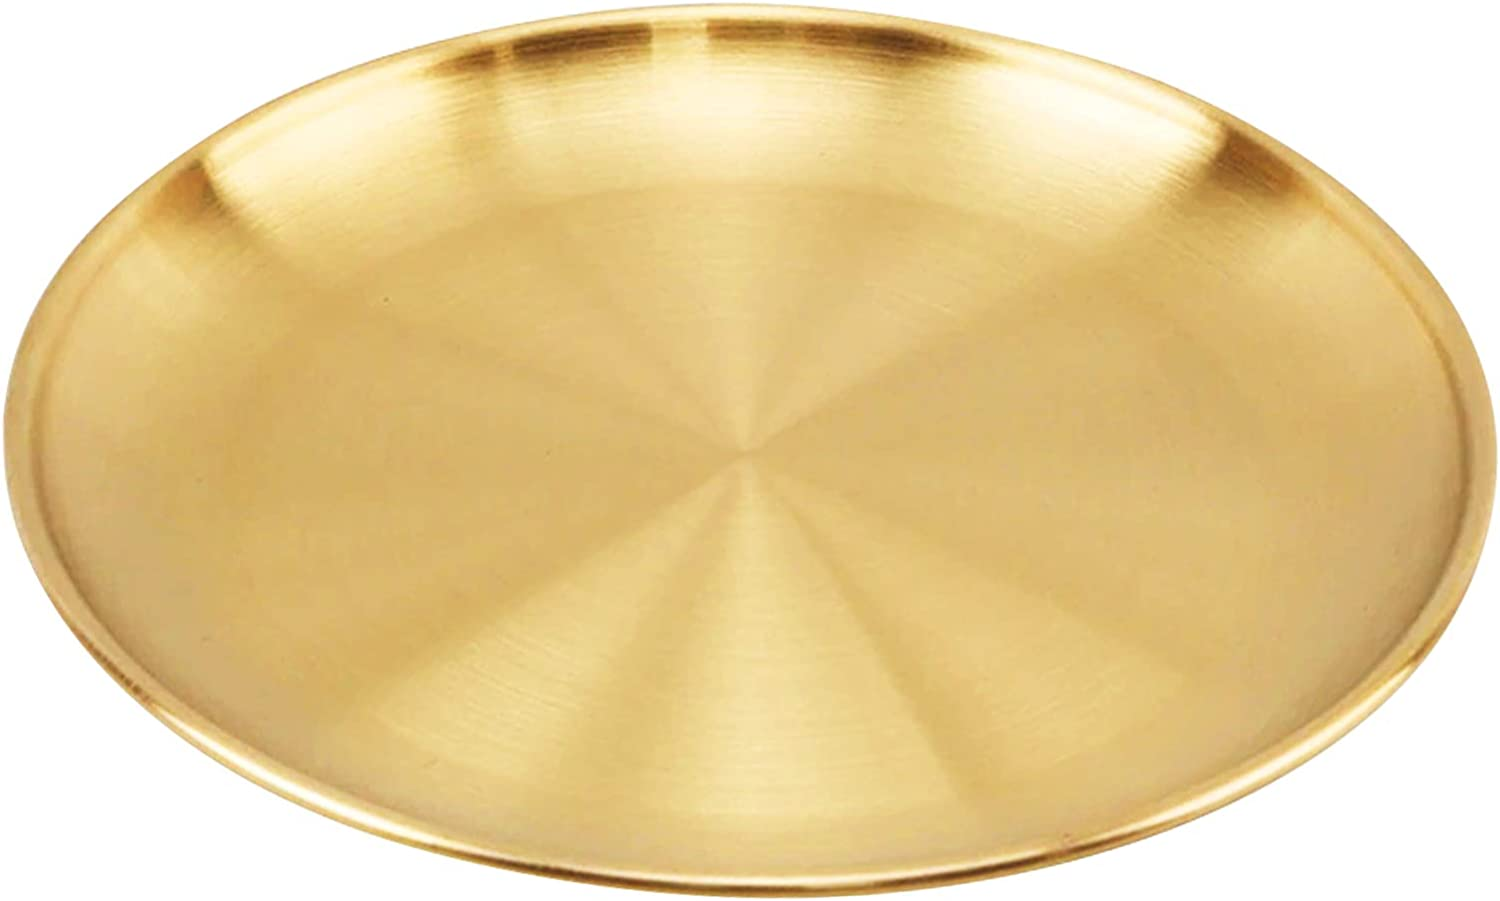 Stainless Steel Golden Plate Dessert Western Food Cake Steak Tray Barbecue Food Container Home Coffee Shop Hotel Restaurant Dining Equipment (20CM)